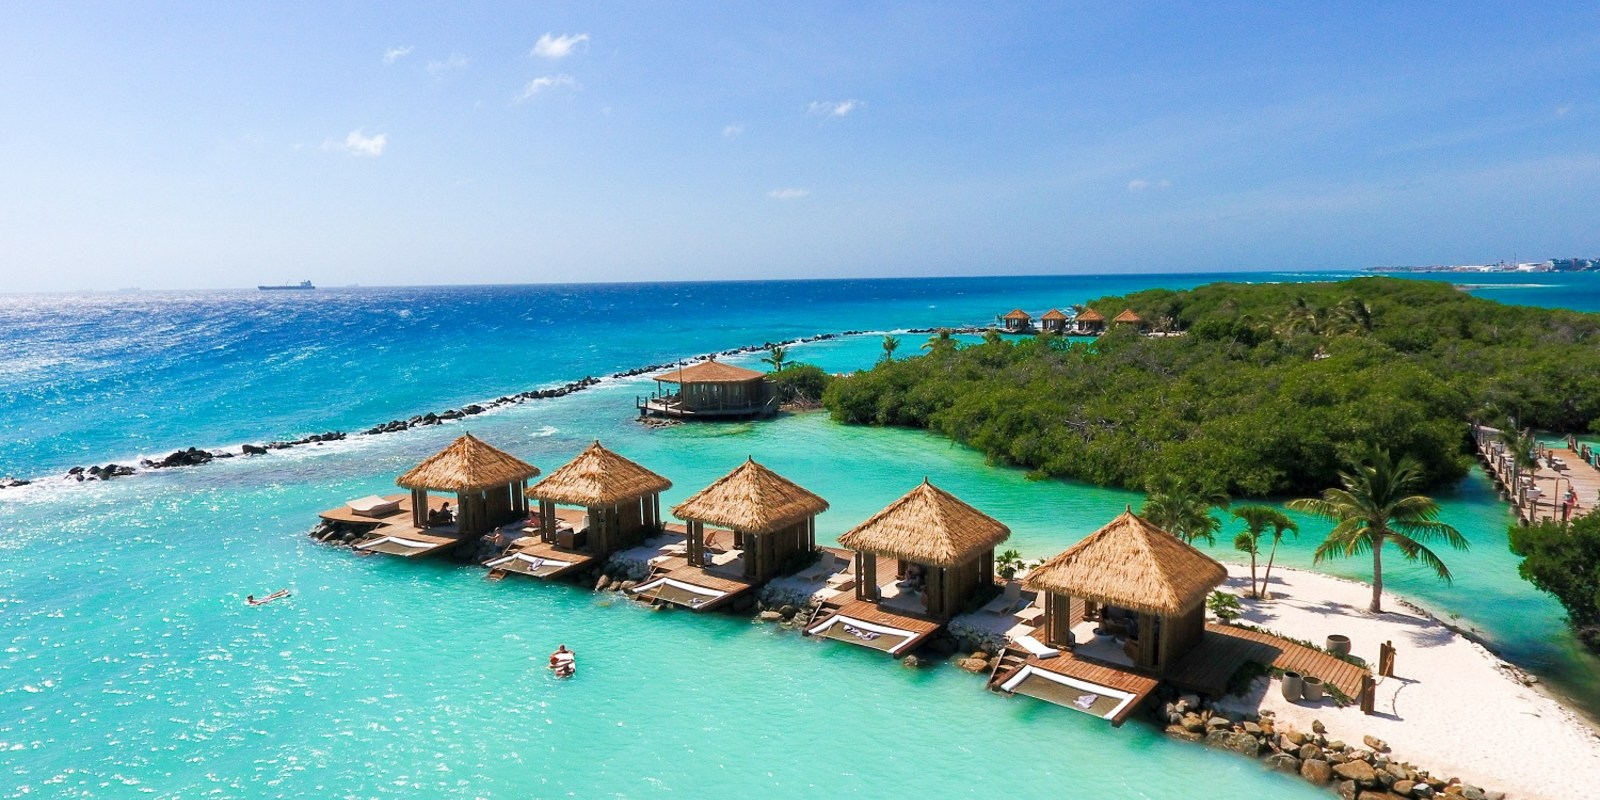 Aruba Vacation Packages Travel Deals 2020 Package Save Up To 583 Travelhoteltours